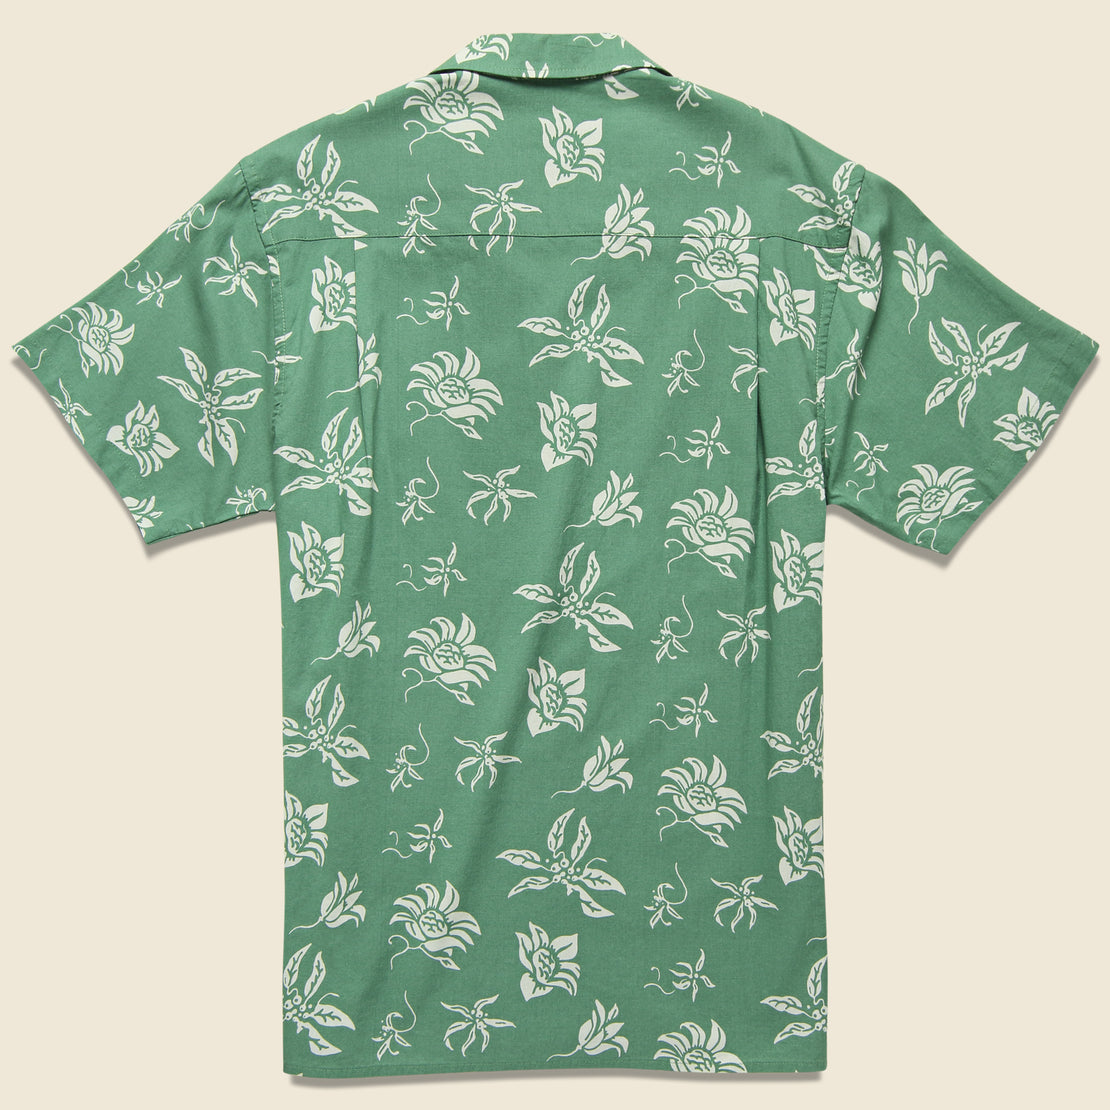 Haiku Aloha Camp Shirt - Herb